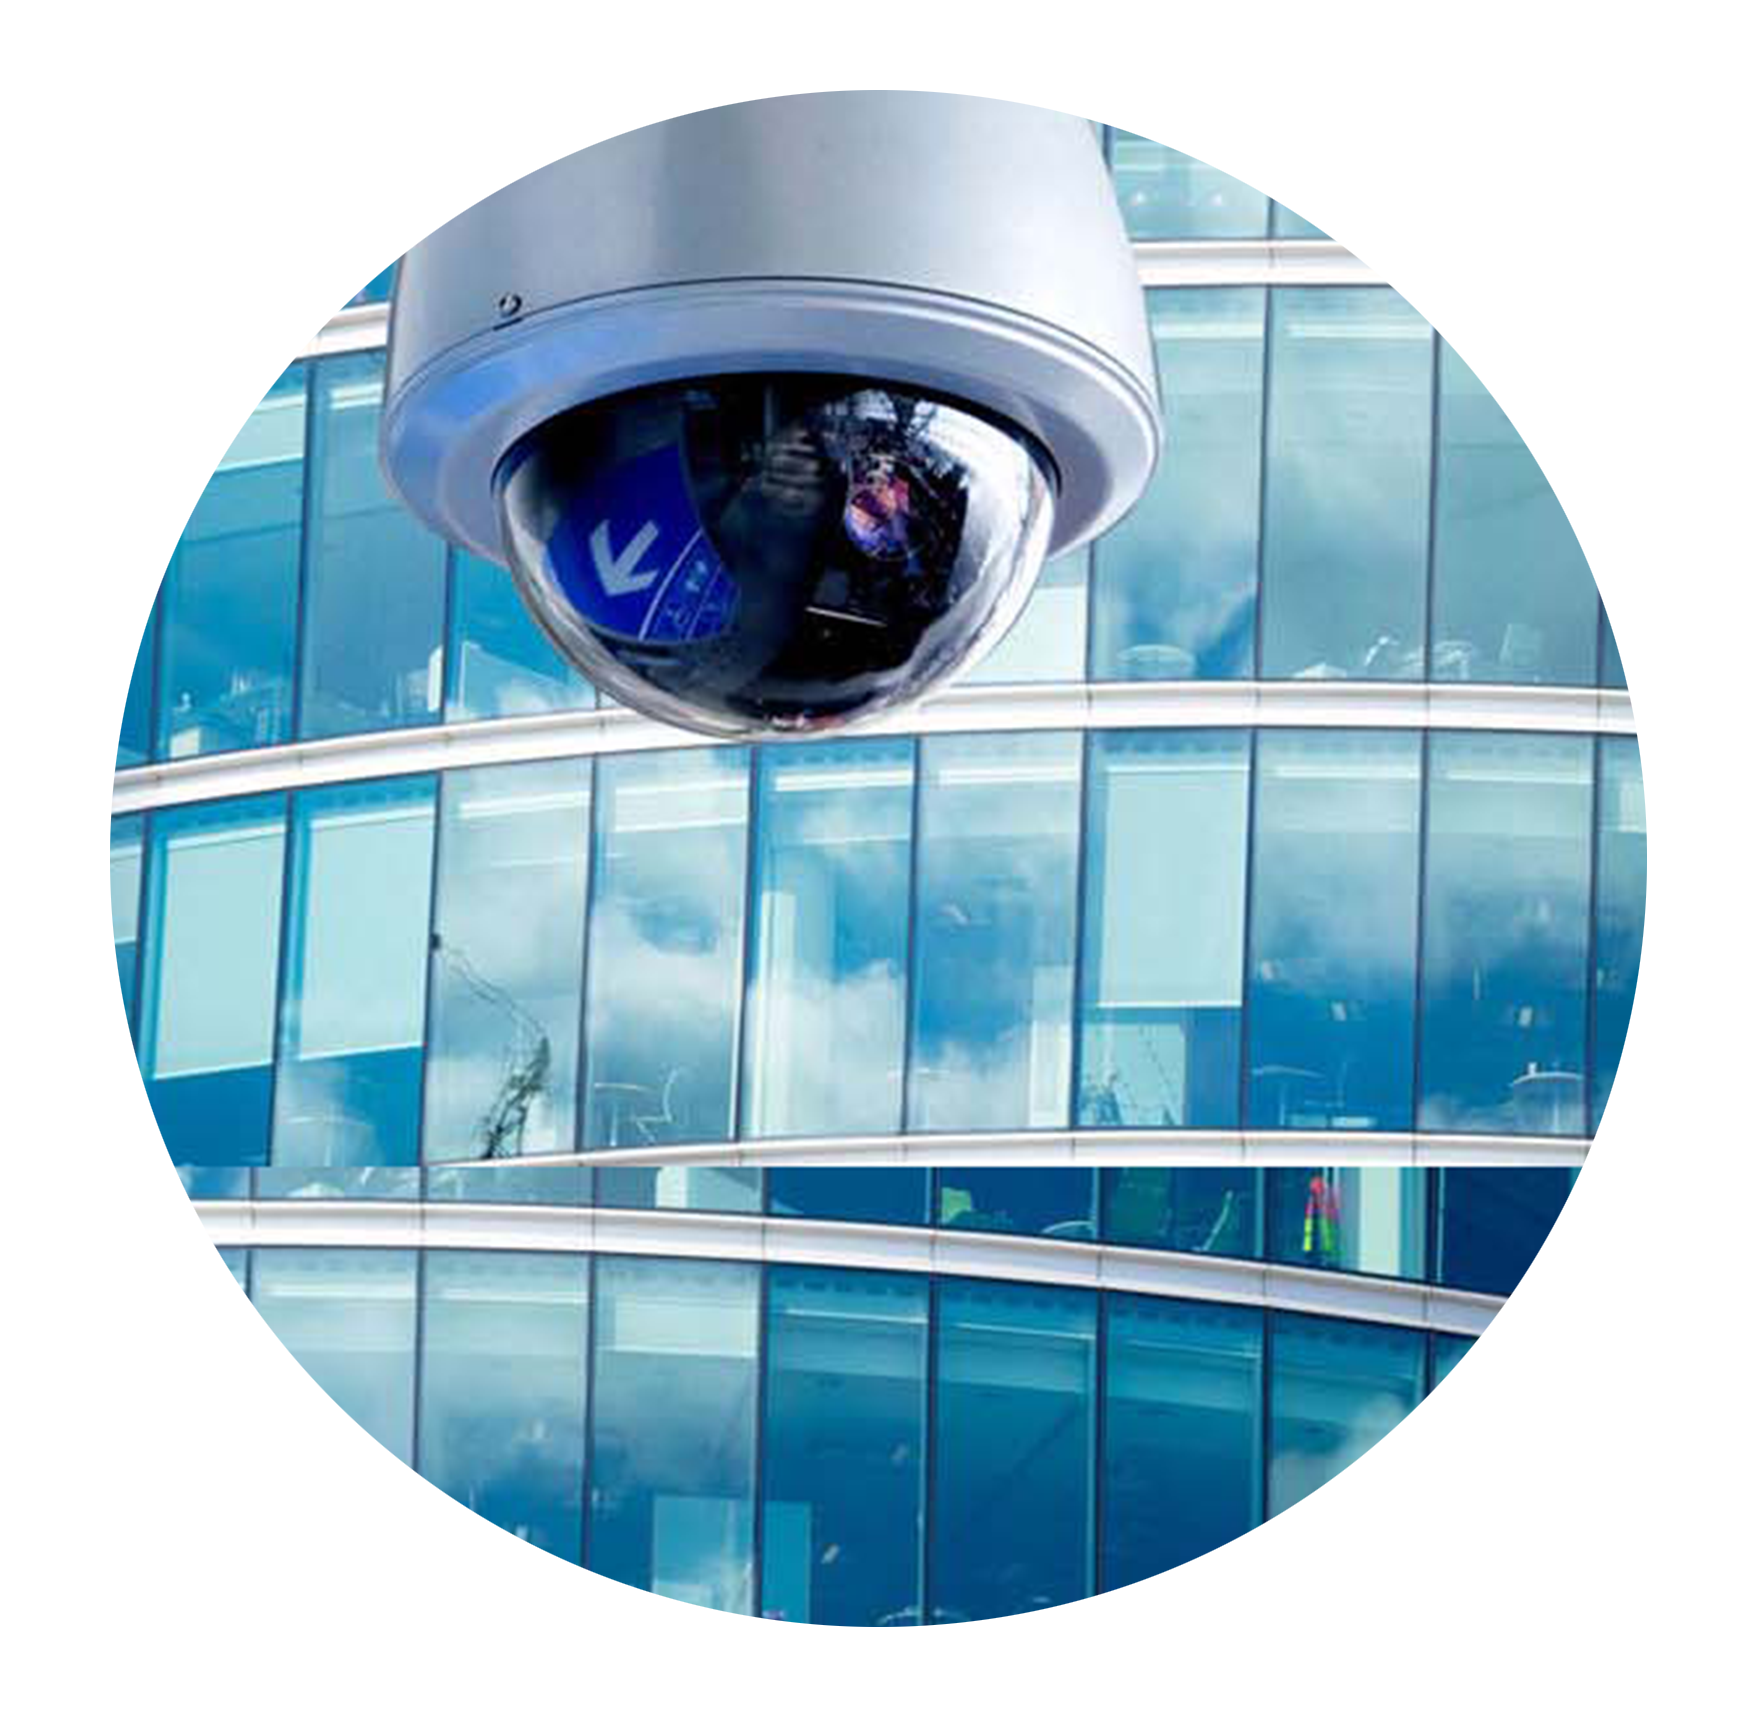 STATE OF THE ART - As with all technology the CCTV industry is constantly changing and moving forward with new innovations and ideas and Select Fire & Security Ltd keeps up with the latest trends offering you state of the art solutions at all times, from static analogue and IP digital cameras to full motion Pan Tilt and Zoom cameras.